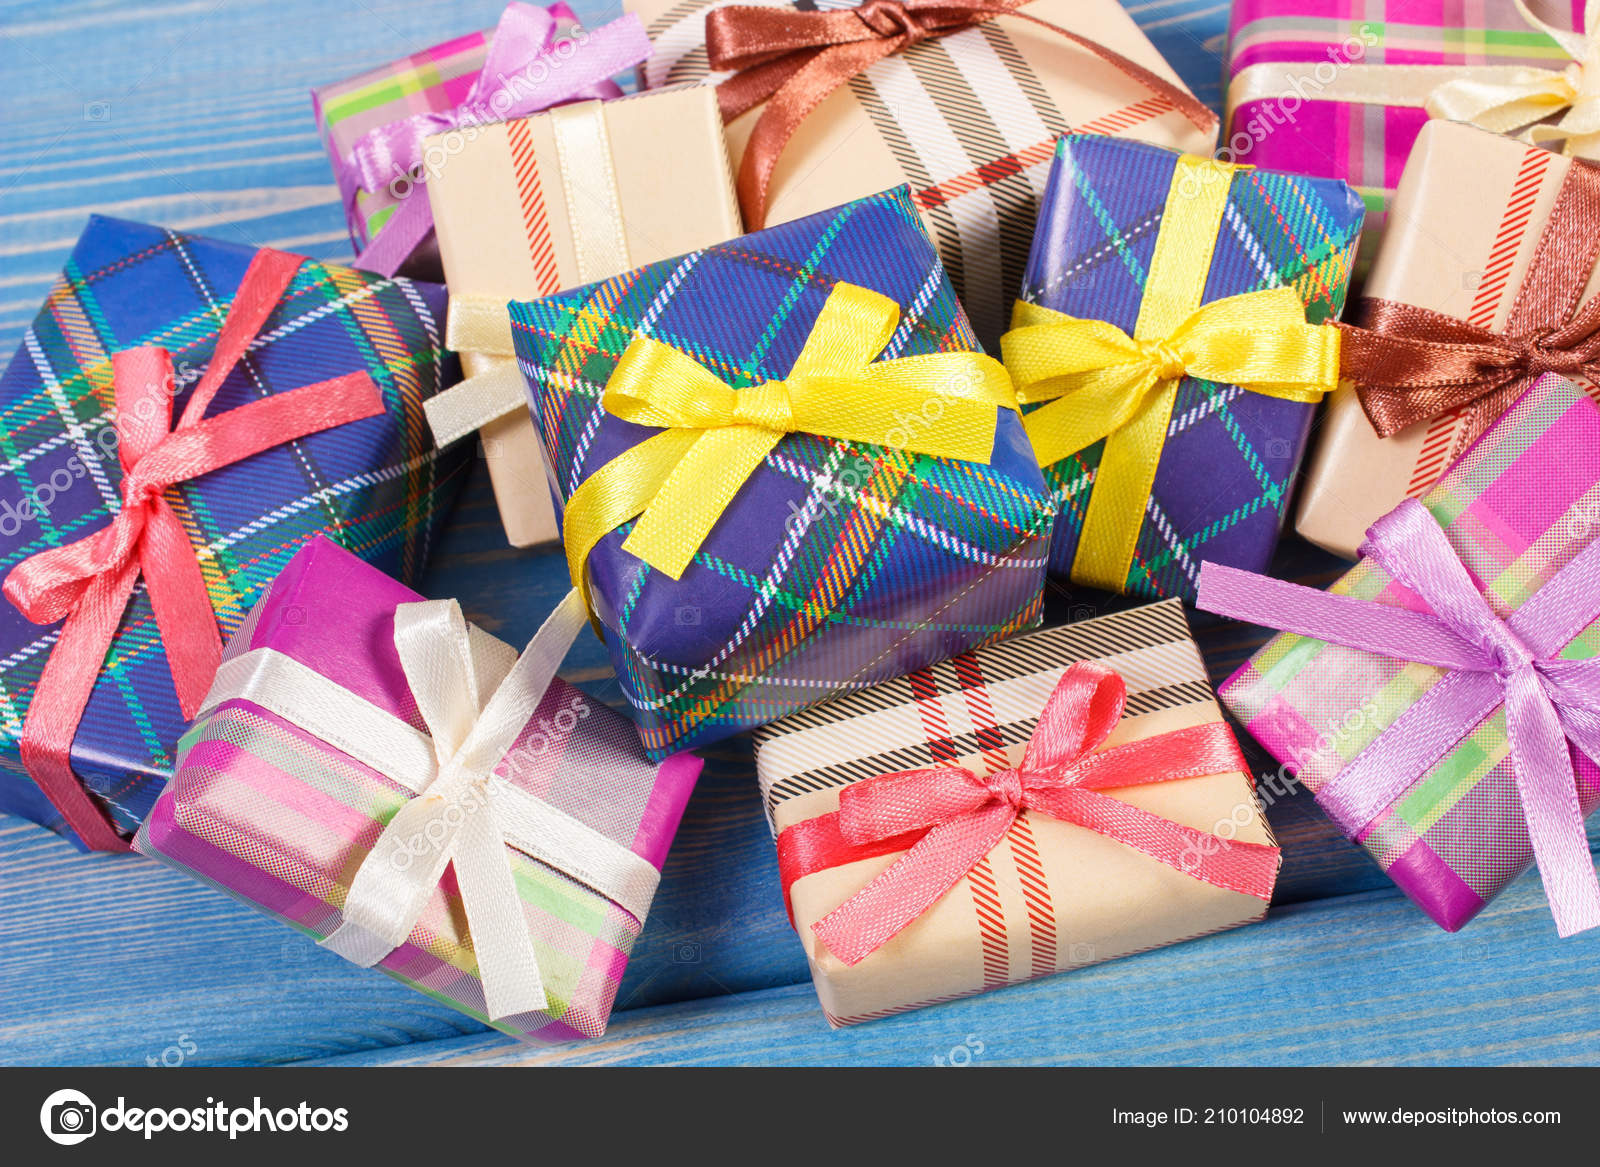 Wrapped Gifts Ribbons Christmas Valentine Birthday Other